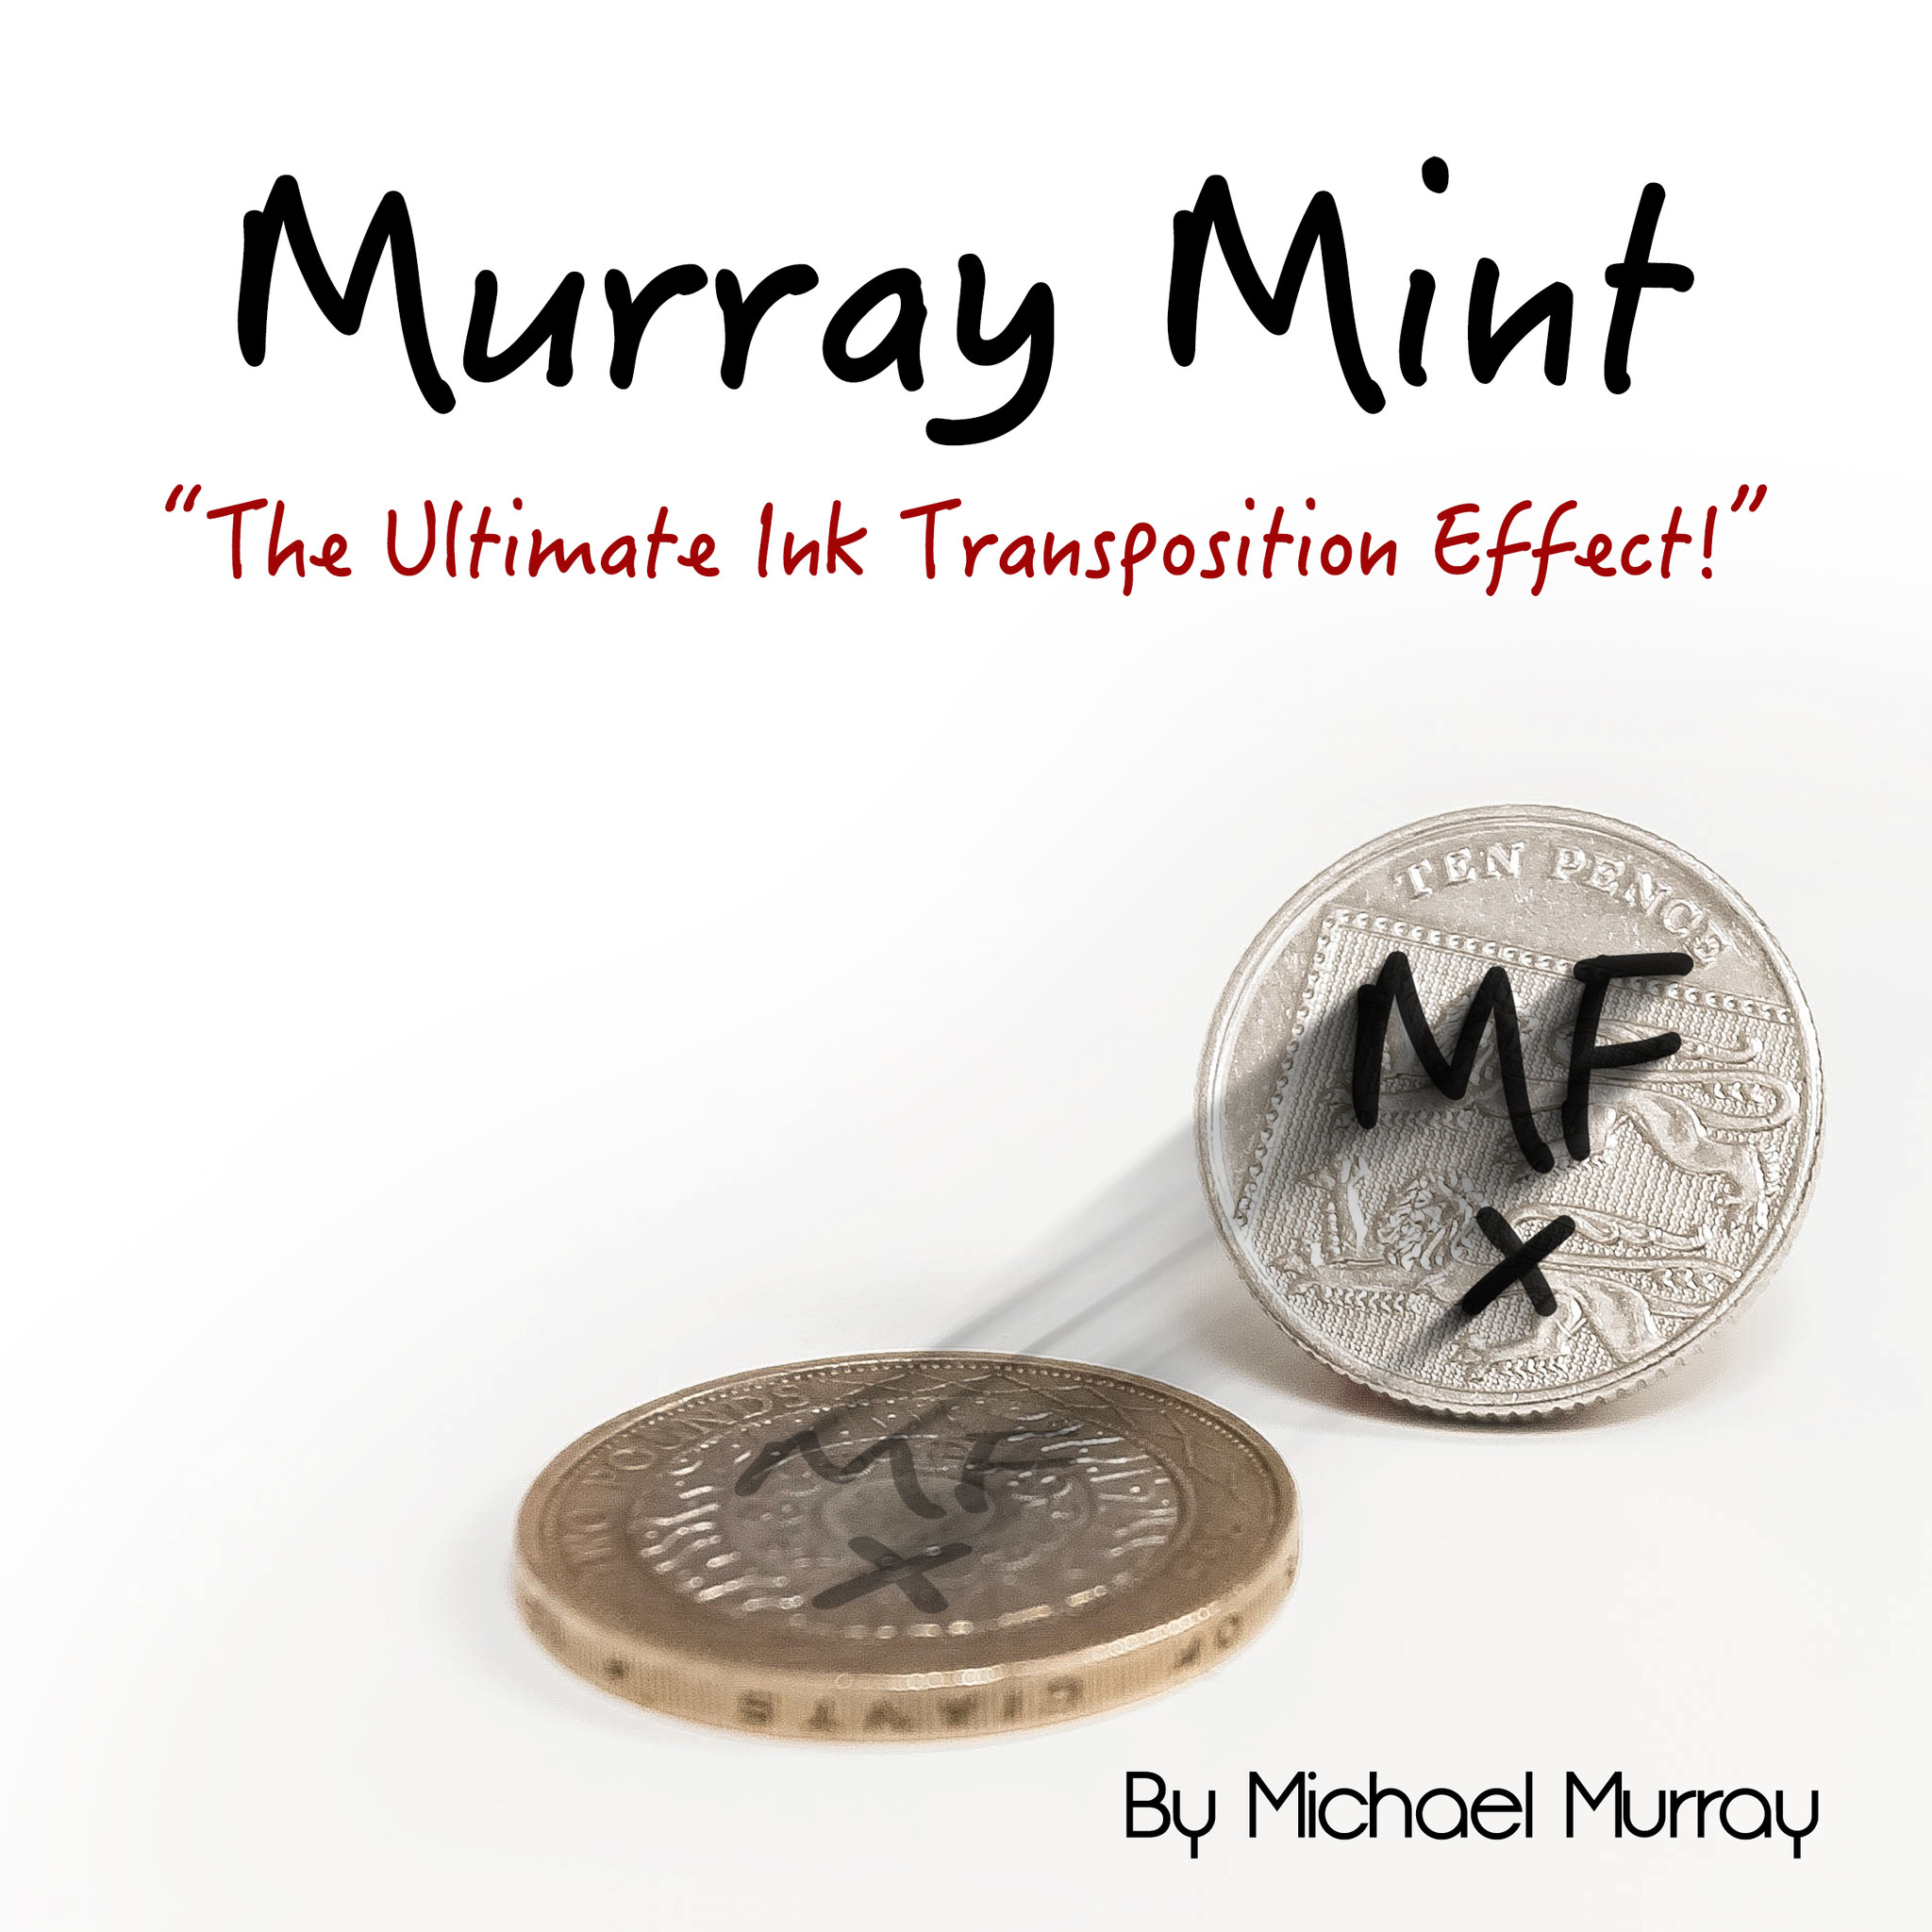 Murray Mint by Michael Murray